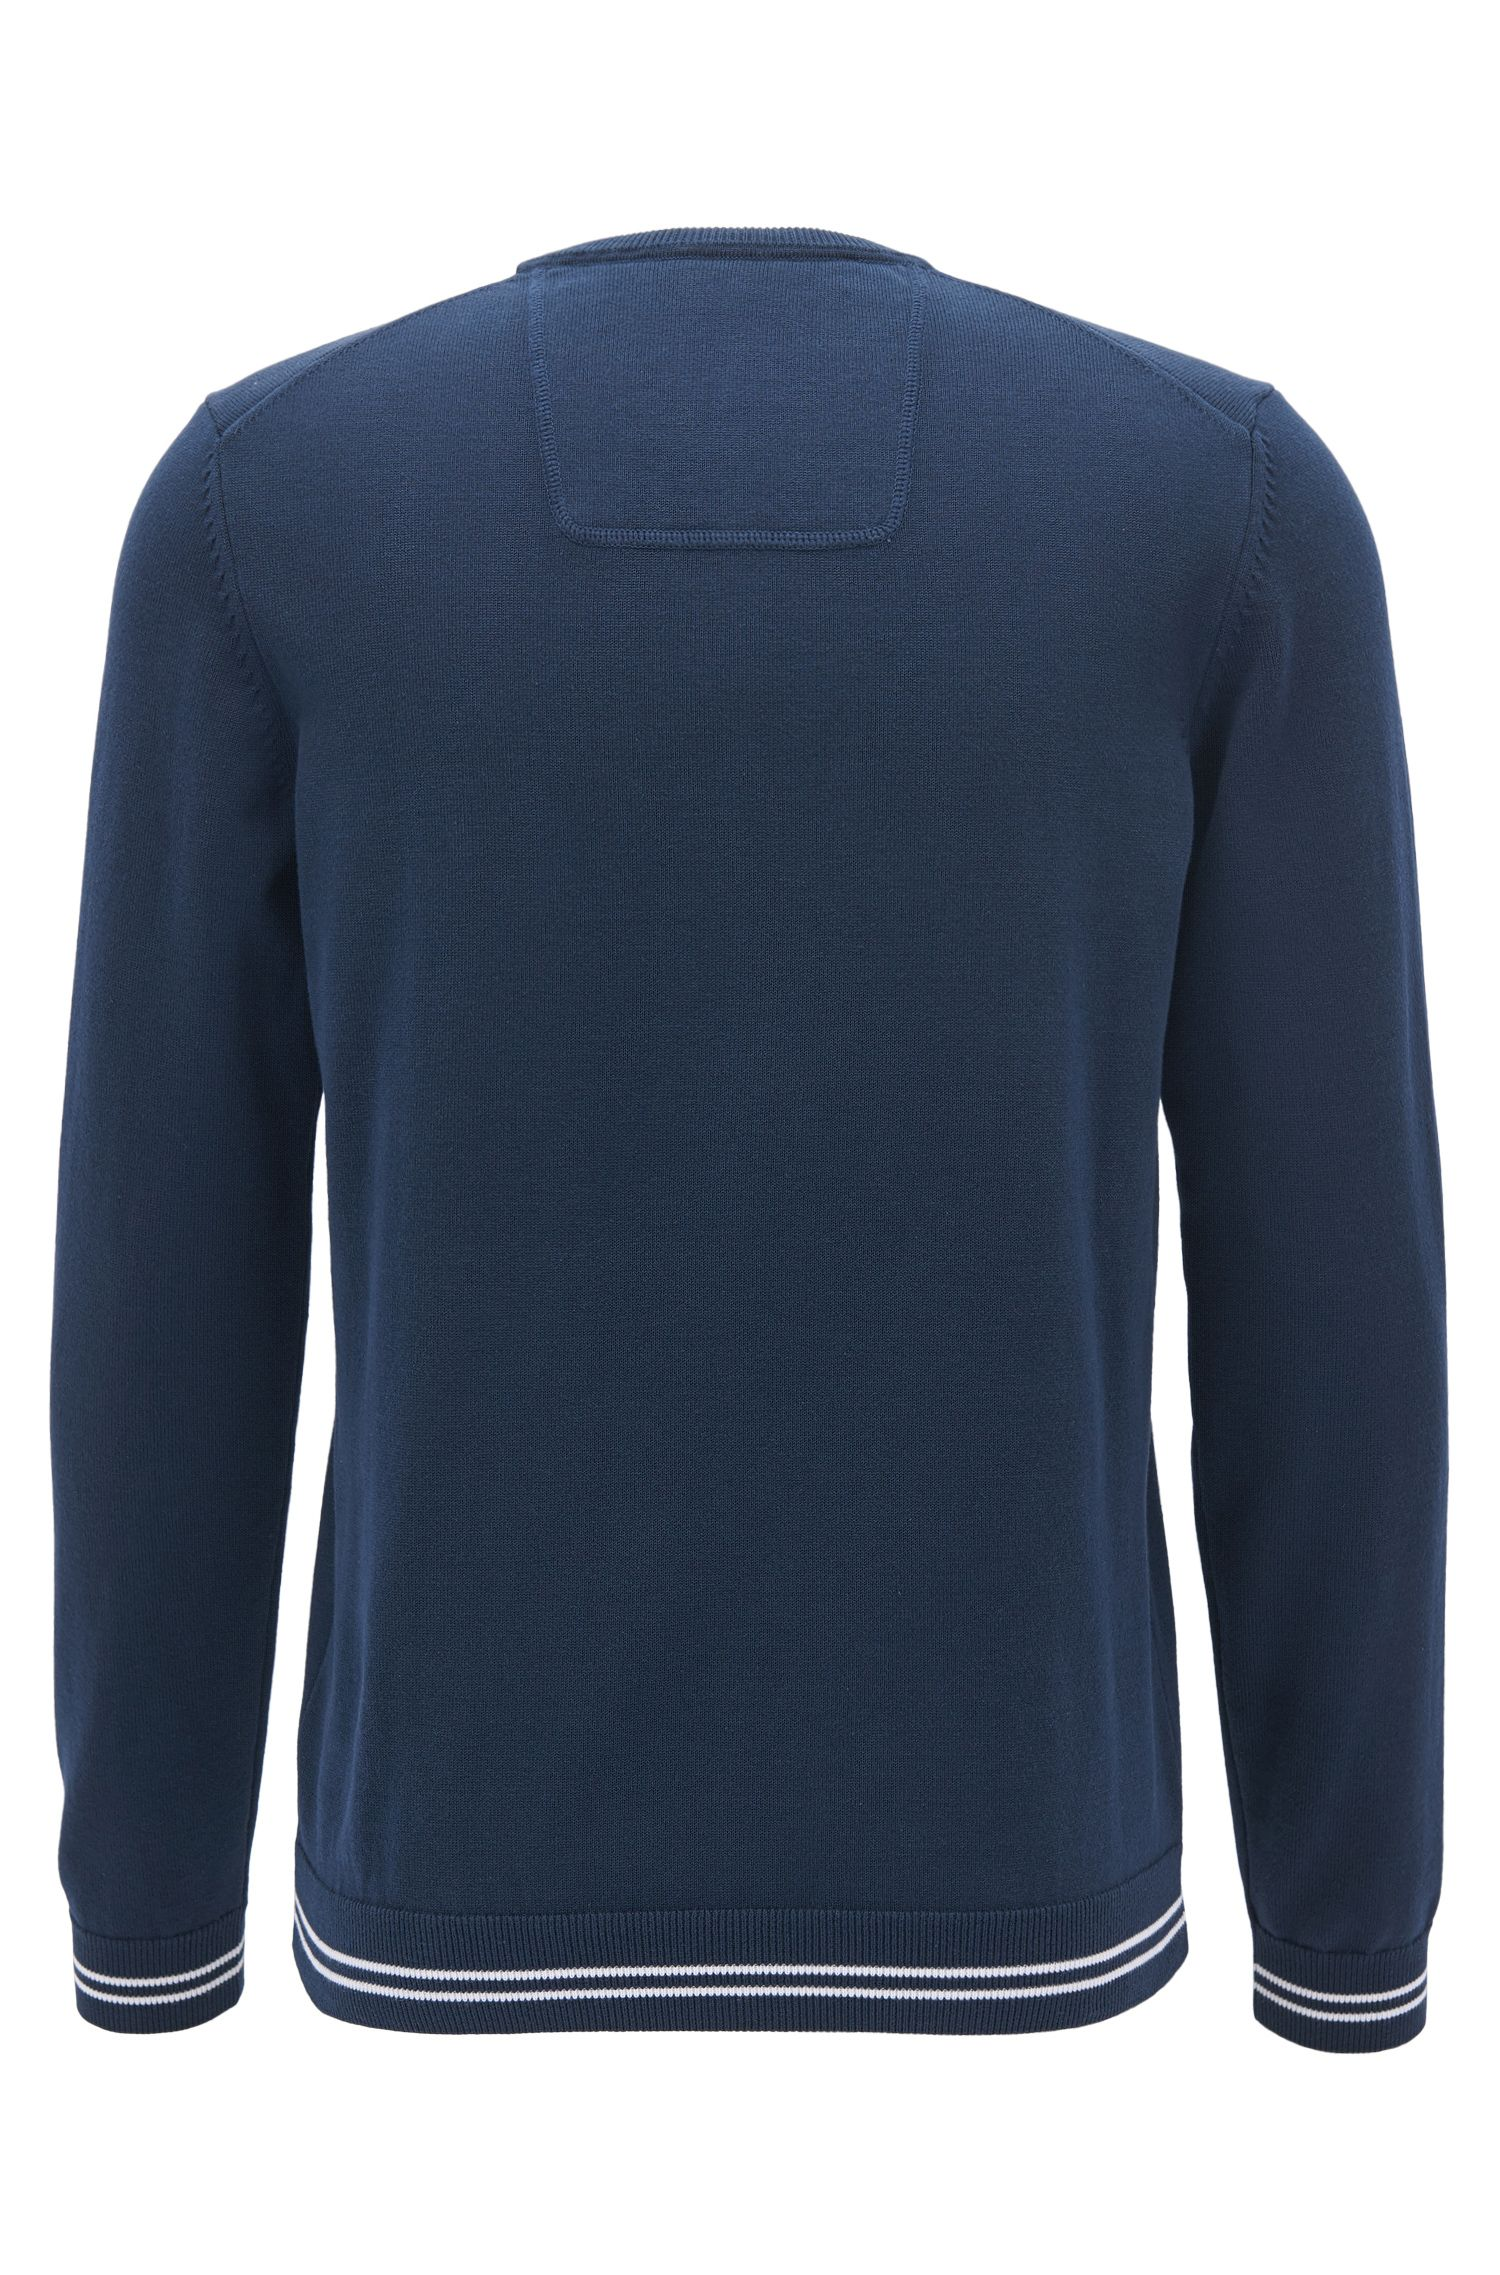 Crew-neck sweater in a cotton blend